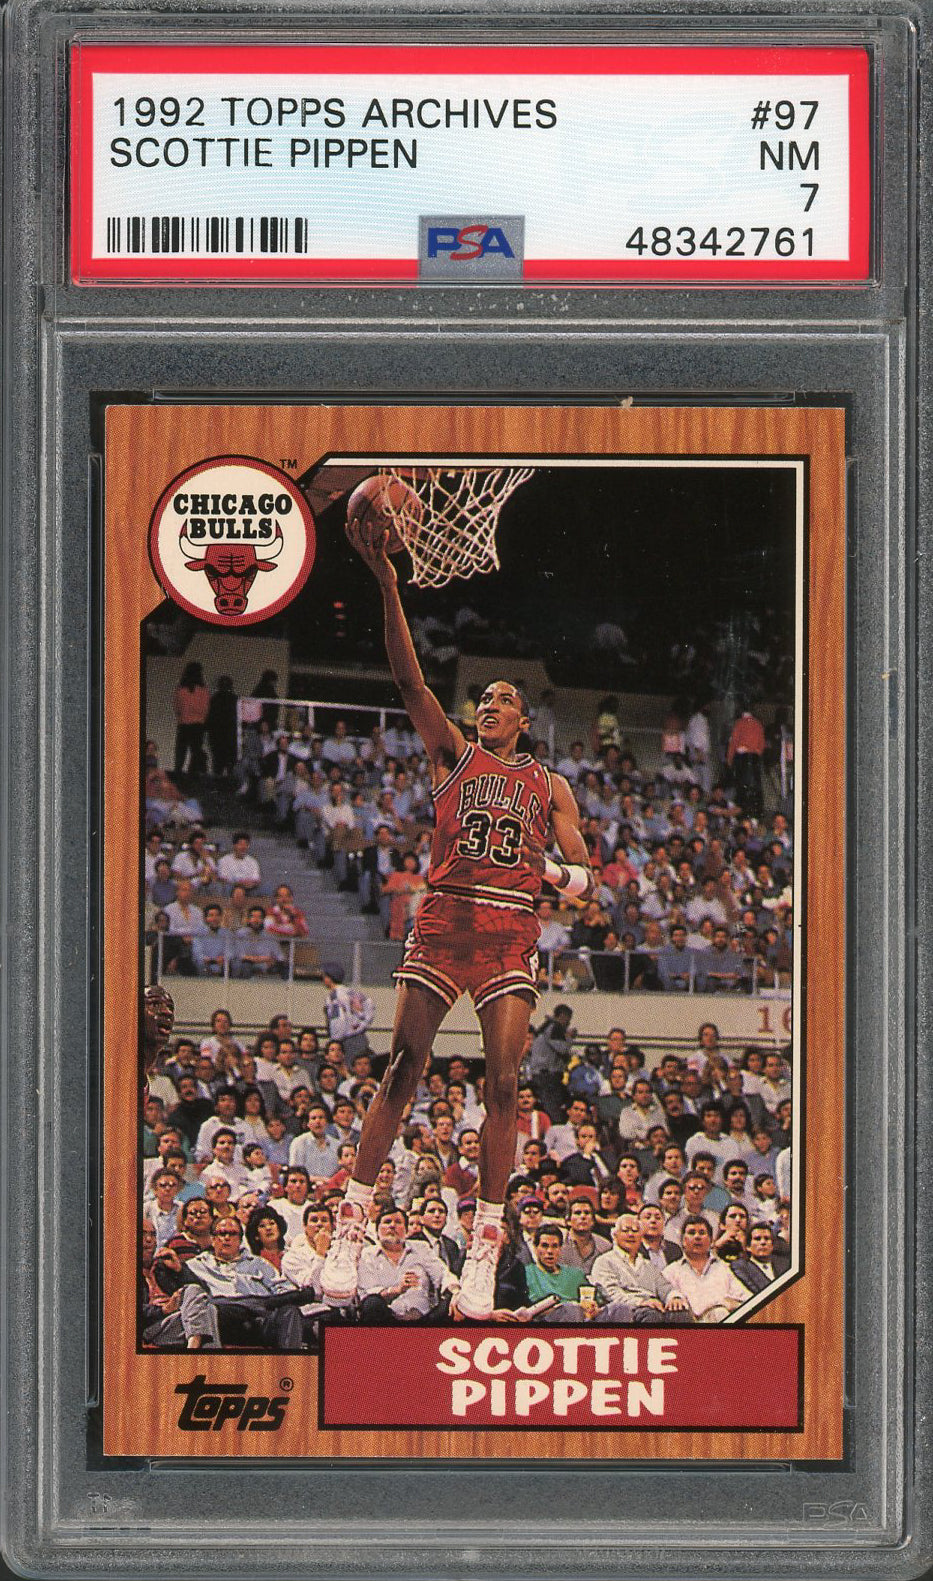 Scottie Pippen Chicago Bulls 1992 Topps Archives Basketball Card #97 Graded PSA 7-Powers Sports Memorabilia